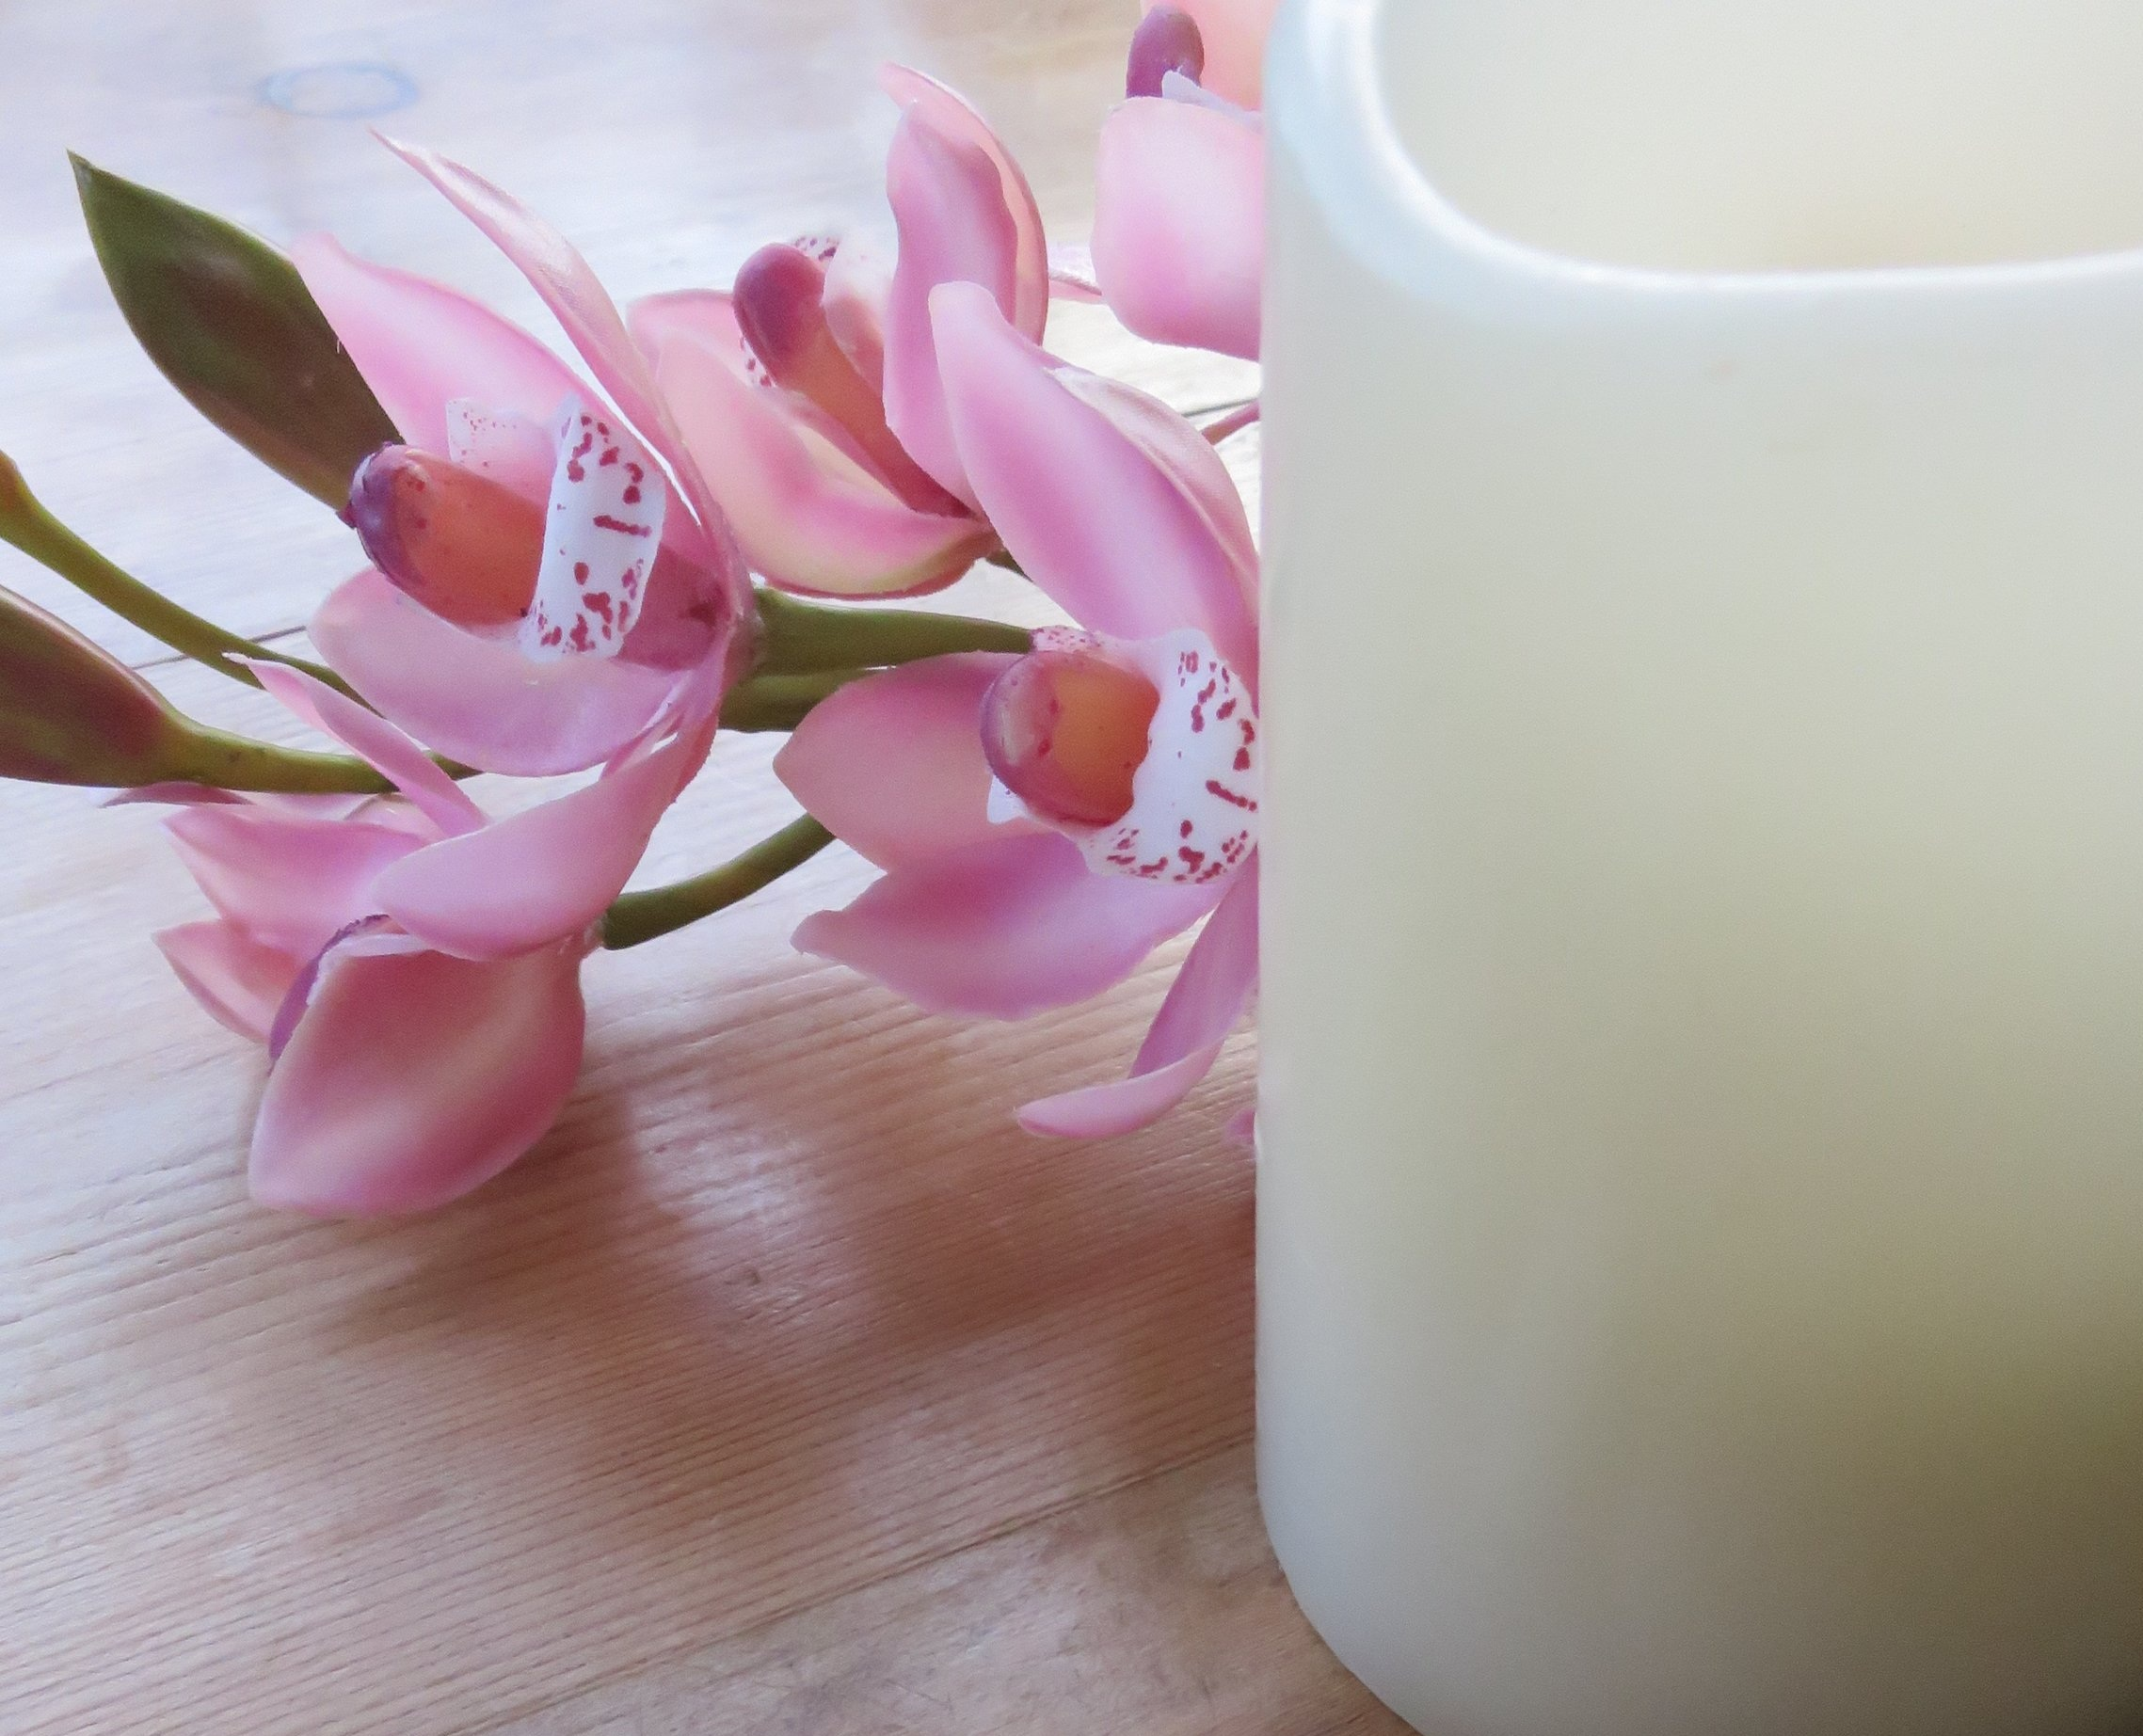 An Artistic Image Of A Beautiful Orchid and Candle For  Emotional Wave Therapy